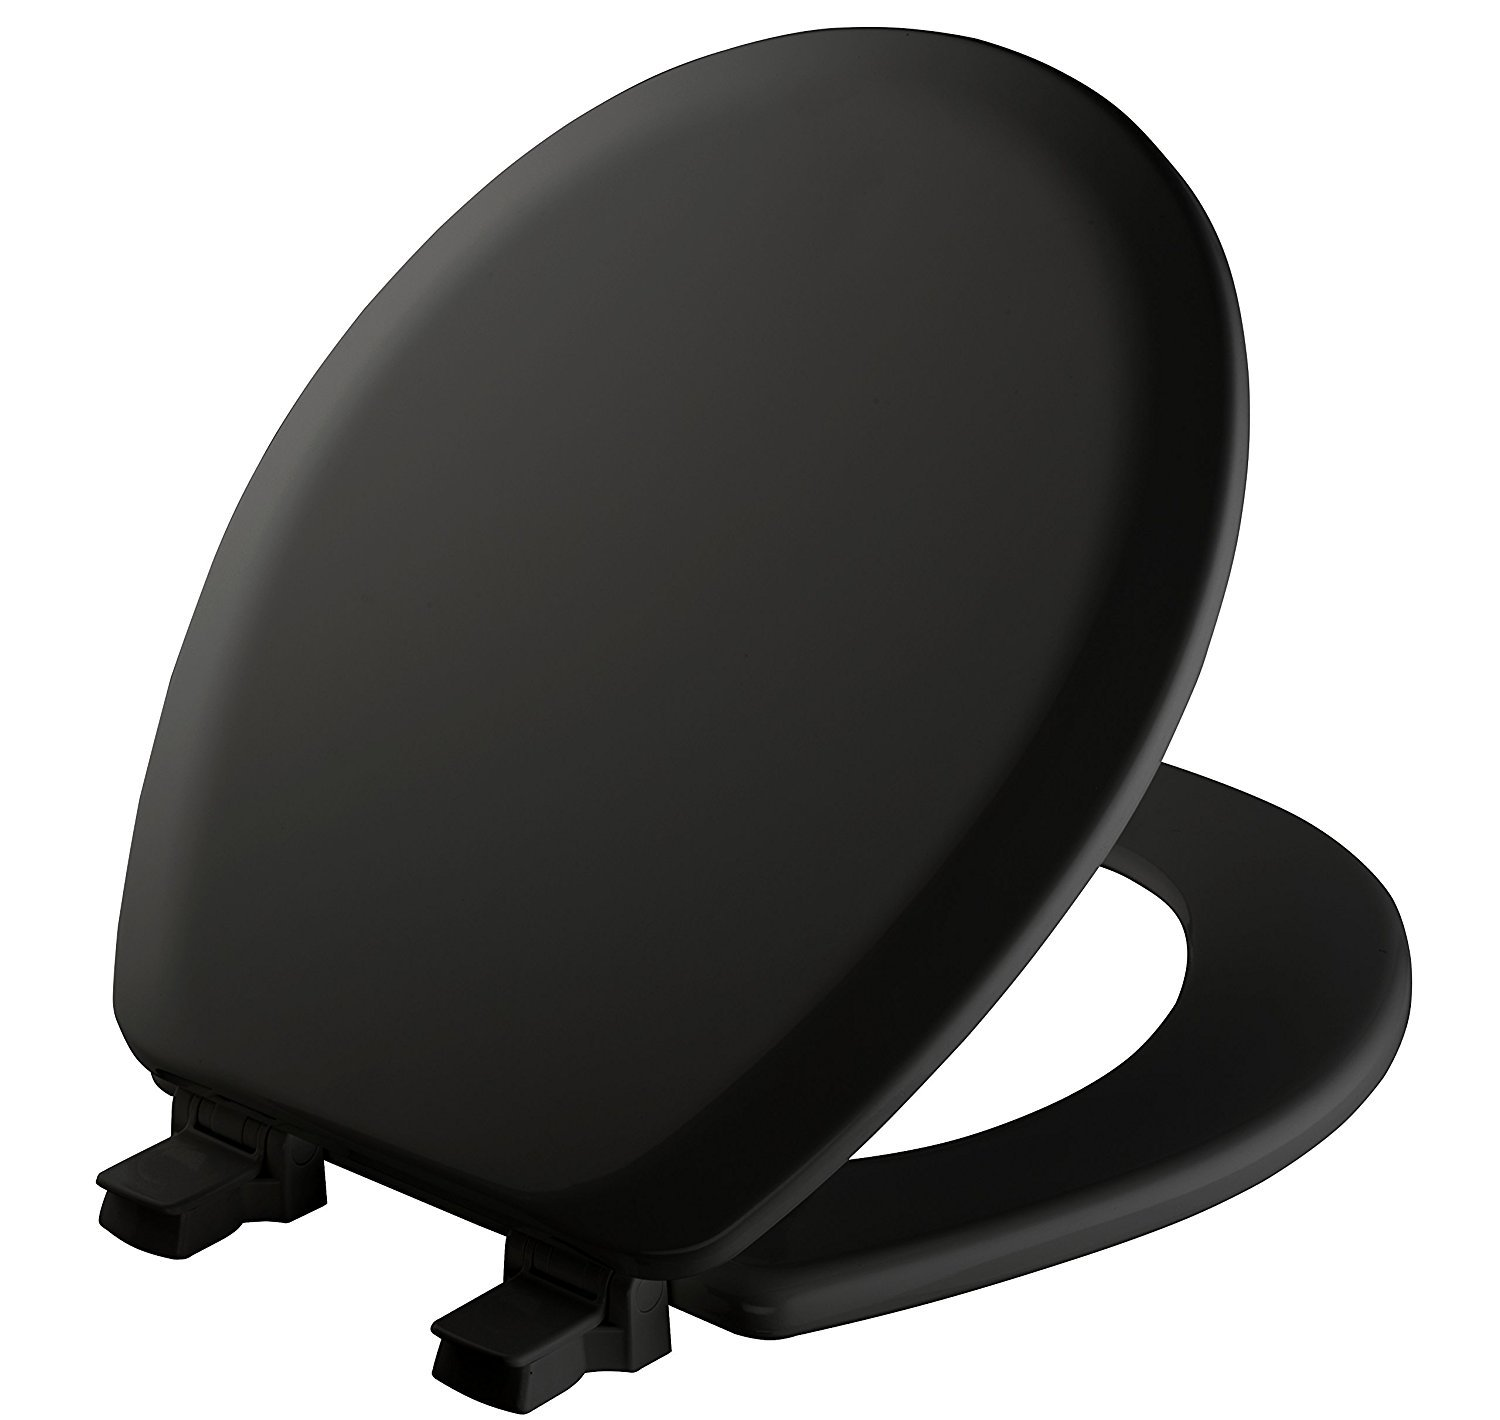 MAYFAIR Toilet Seat will Never Loosen and Easily Remove, ROUND, Durable Enameled Wood, Black, 41EC 047